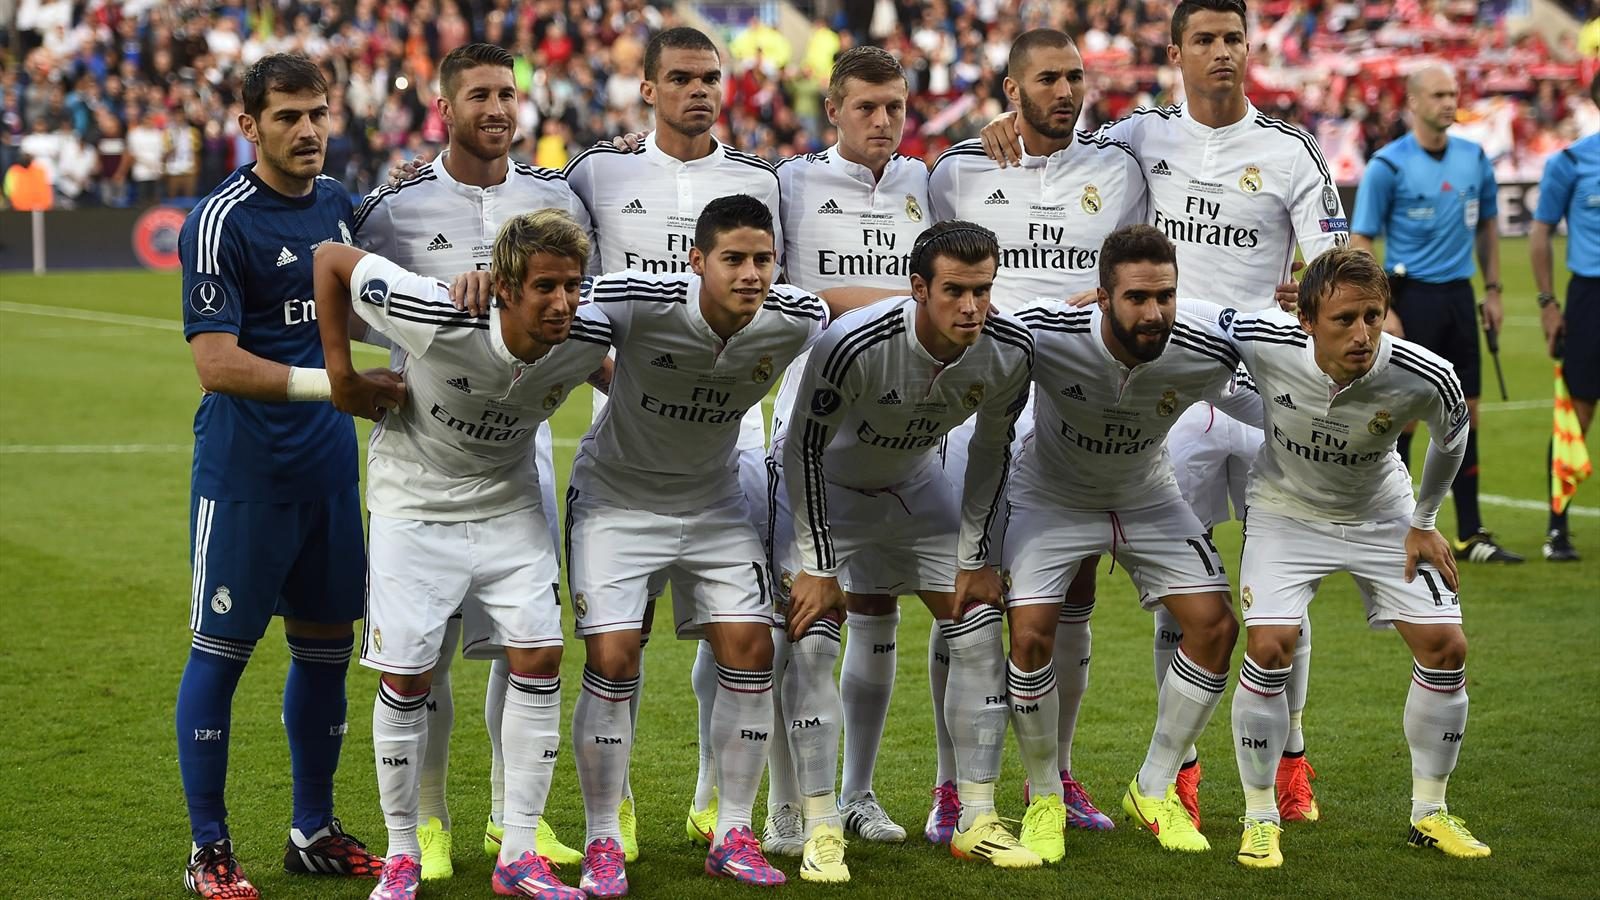 Real Madrid name most expensive starting XI in football history - European Super Cup 2014-2015 ...